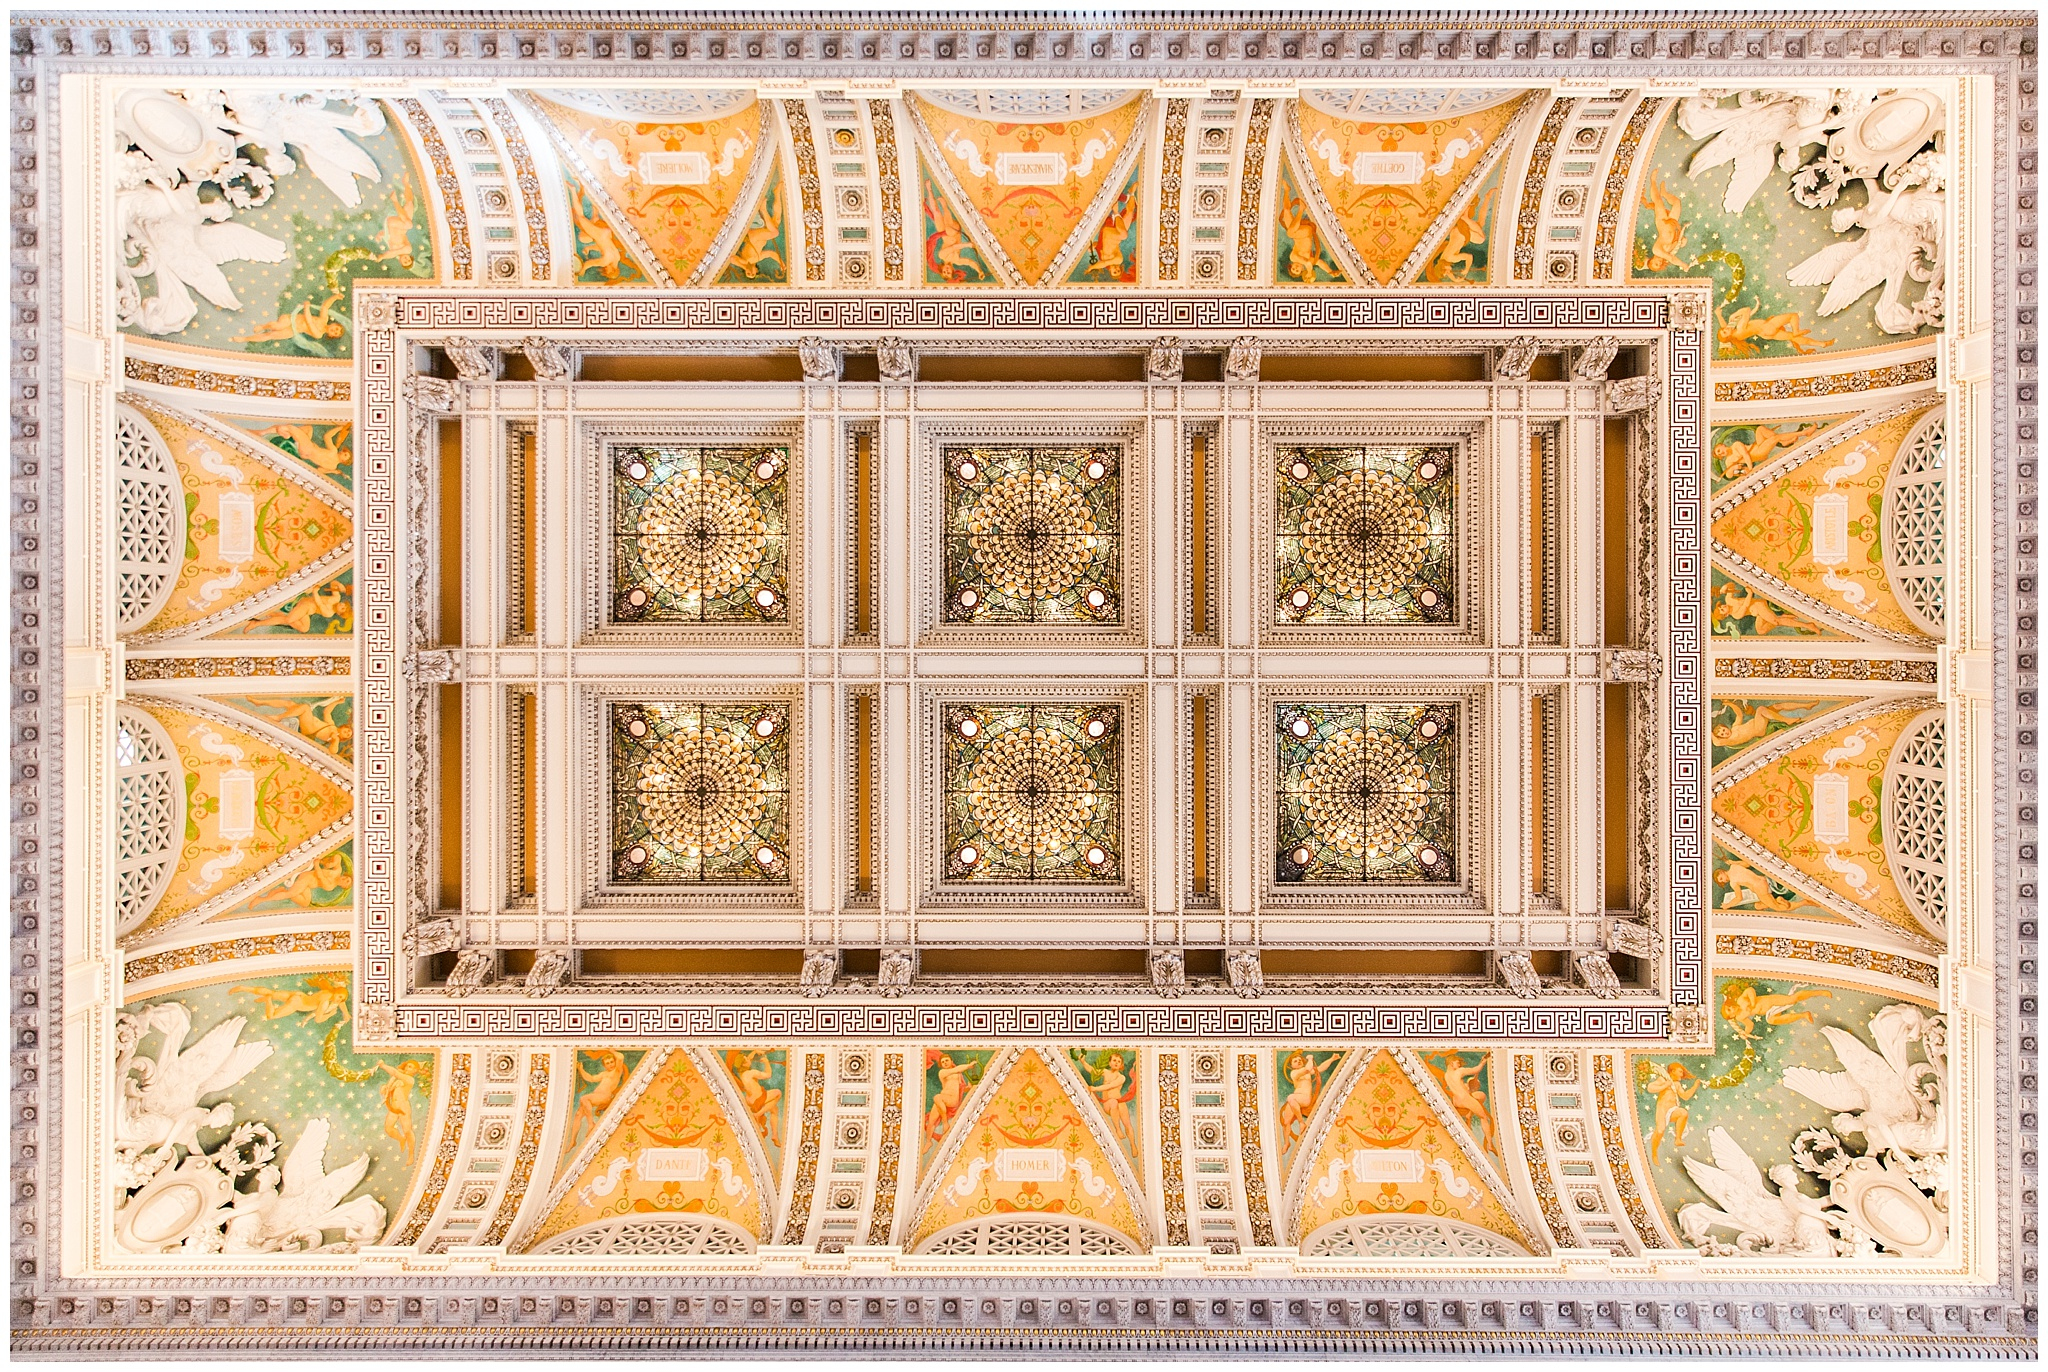 libraryofcongress_0001.jpg